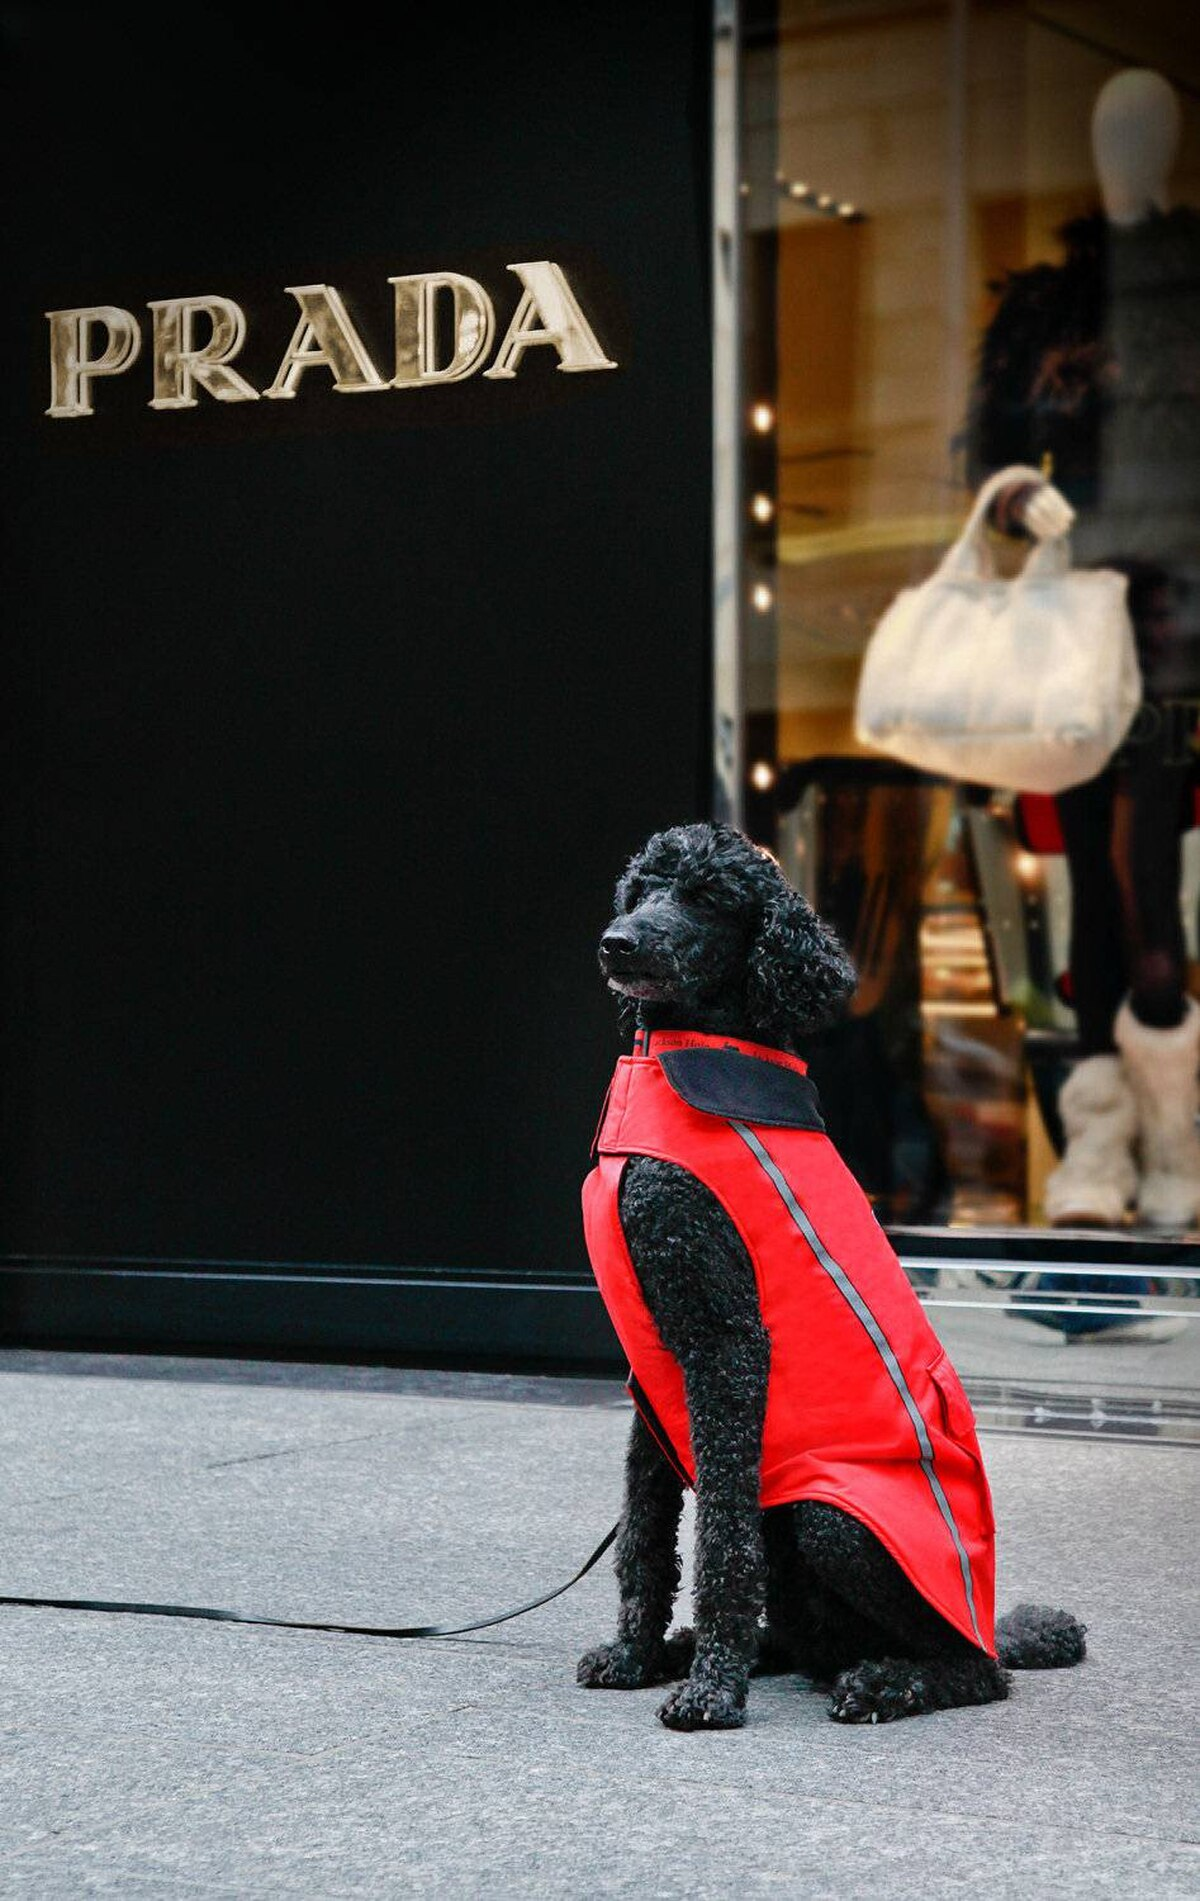 Chief looking regal outside the Prada store in his red Snow Seeker coat.